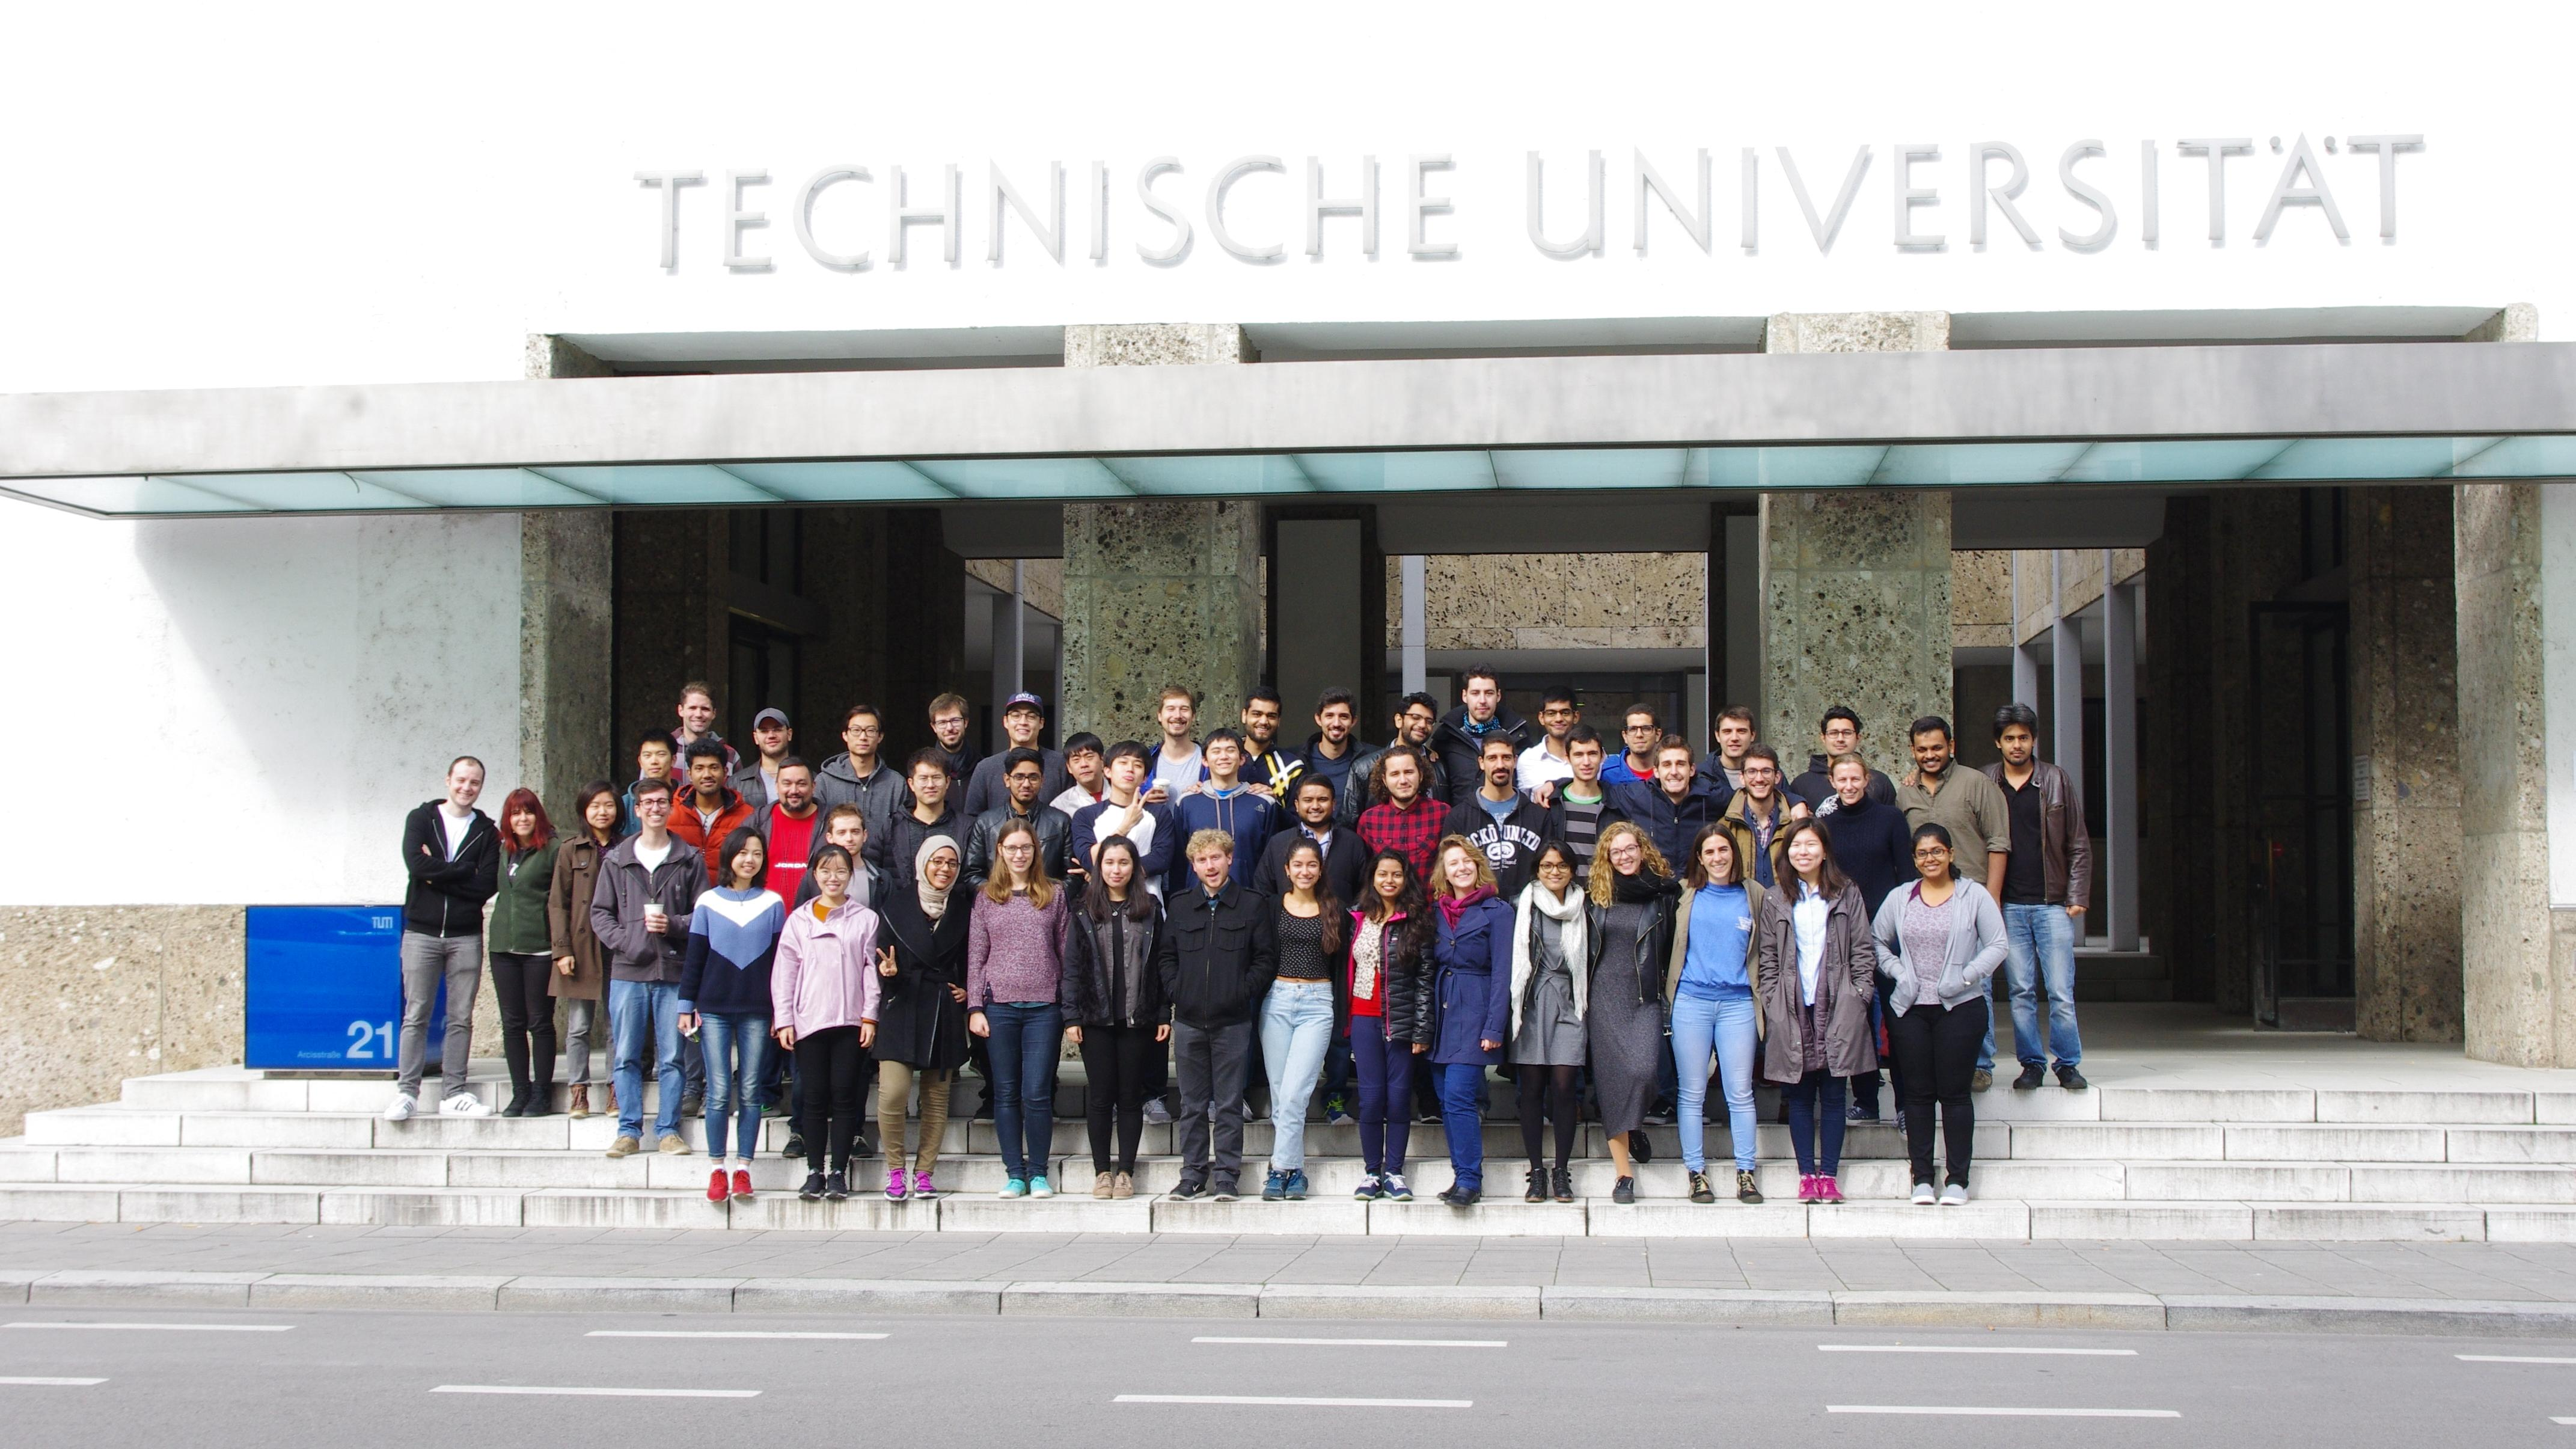 The Pre-Study Course group 2017 (Image: Laetitia Eichner)